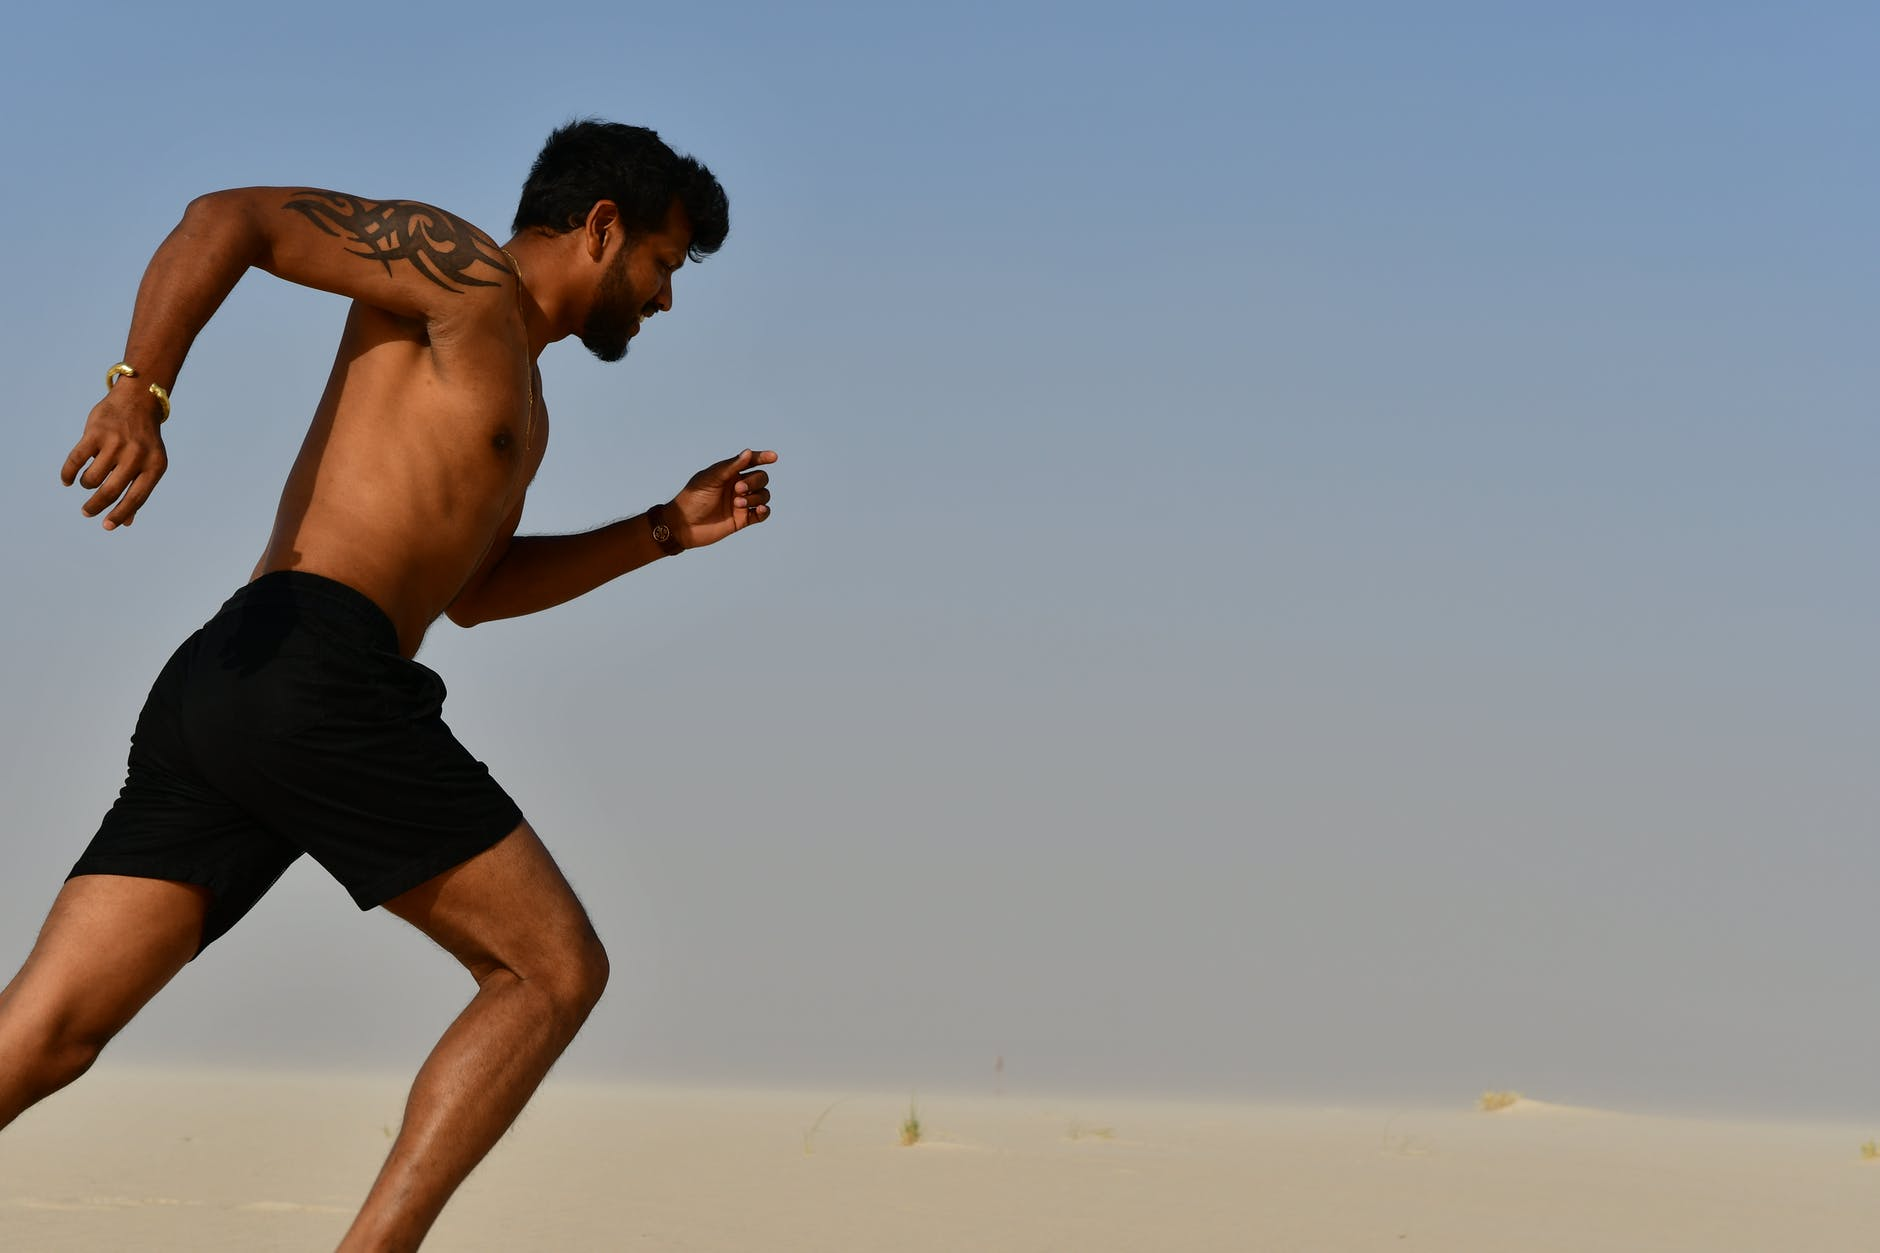 strong shirtless sportsman jogging on bright day